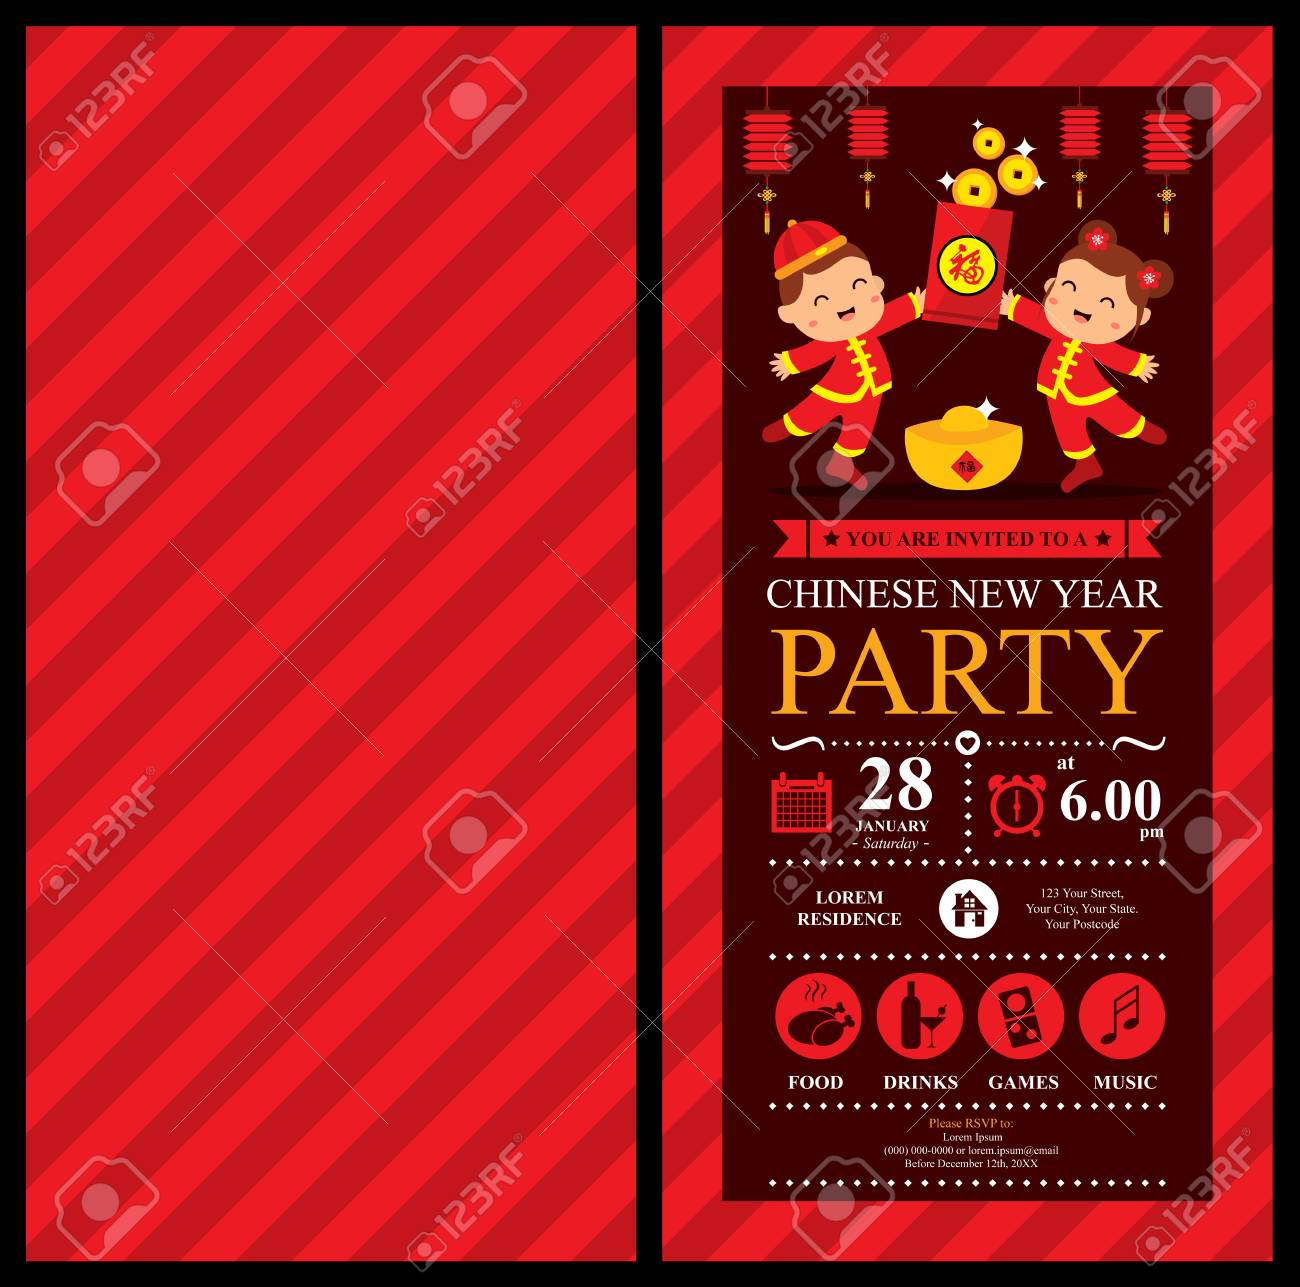 chinese new year invitation card stock vector 67475902